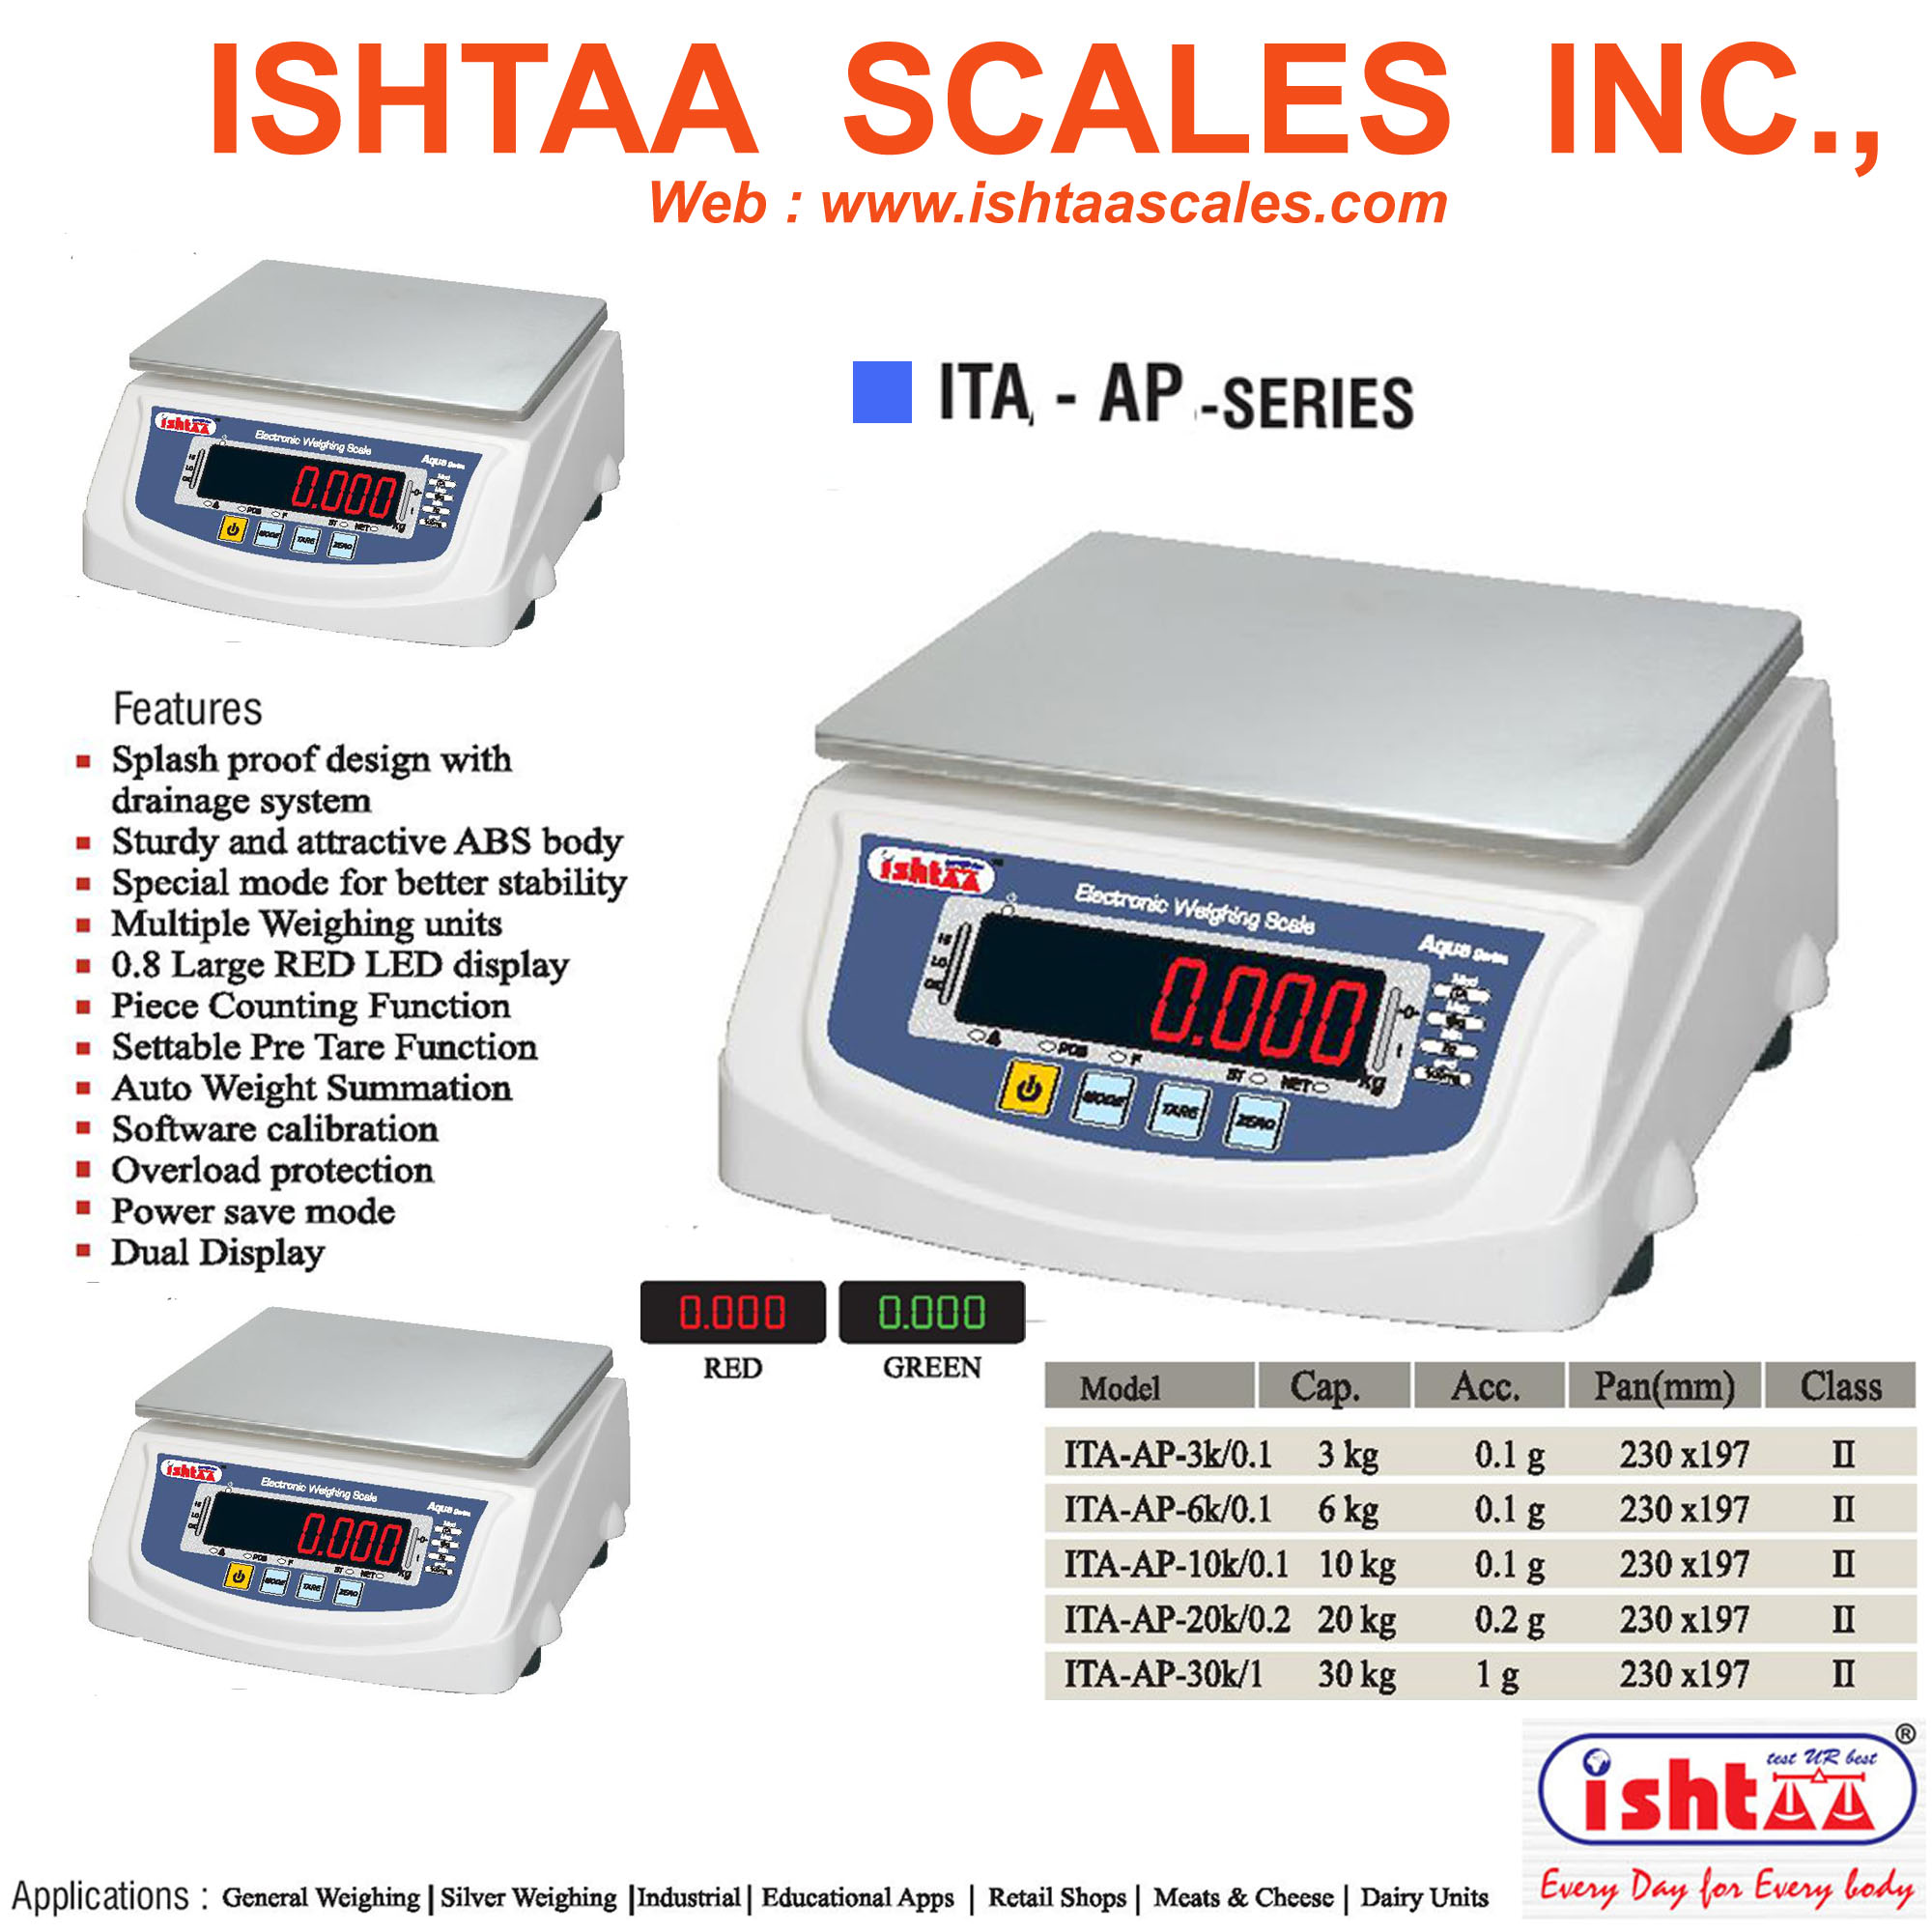 Most Economic Weighing  Scale  in Coimbatore. ISHTAA - AP Series Best Table Top Scales for All Retailers Click here to know more   Compact Design to Carry Anywhere Faster Processing & Better Piece Counting Scale.. Sleek, Small & Stylish Weighing Scale now @ Low Cost. High Bright LED Display, Rear & Pole display available Auto Zero Tracking & Overload Indication Available..!  Applicable  for All  Retail Weighing,  Packing units Vegetable Markets,  Dairy units & Label,  Bakery's  units Silver jewellery shop  Industrial units  Meat & Cheese  Button & other piece counting applications.  Buy now @ Ishtaa Coimbatore. Our Showroom: Raja Street, Coimbatore, 09843015120. Our Central Off: Nava India, Near SNR College,  Coimbatore: 09843016028.